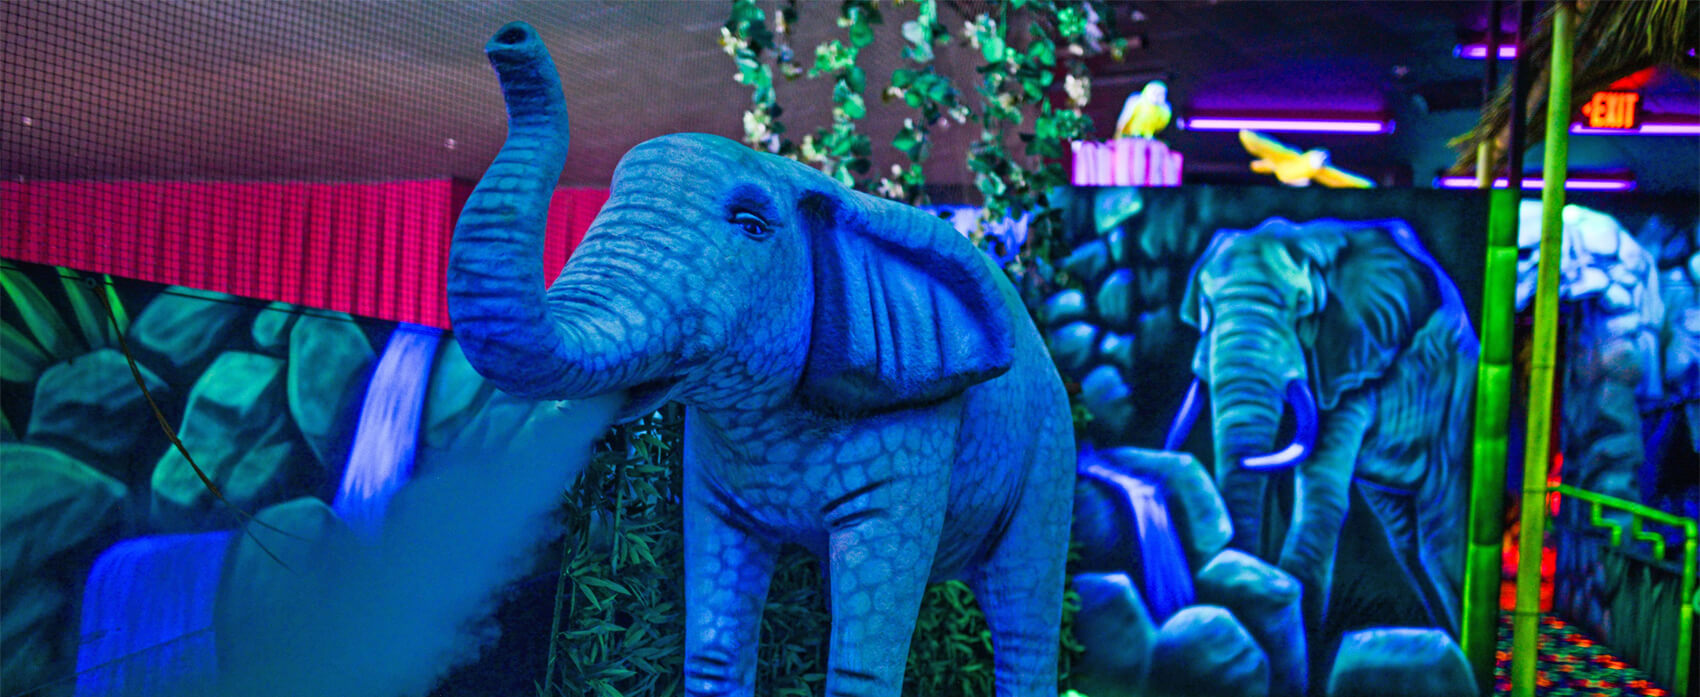 Elephant In Mini Golf Course